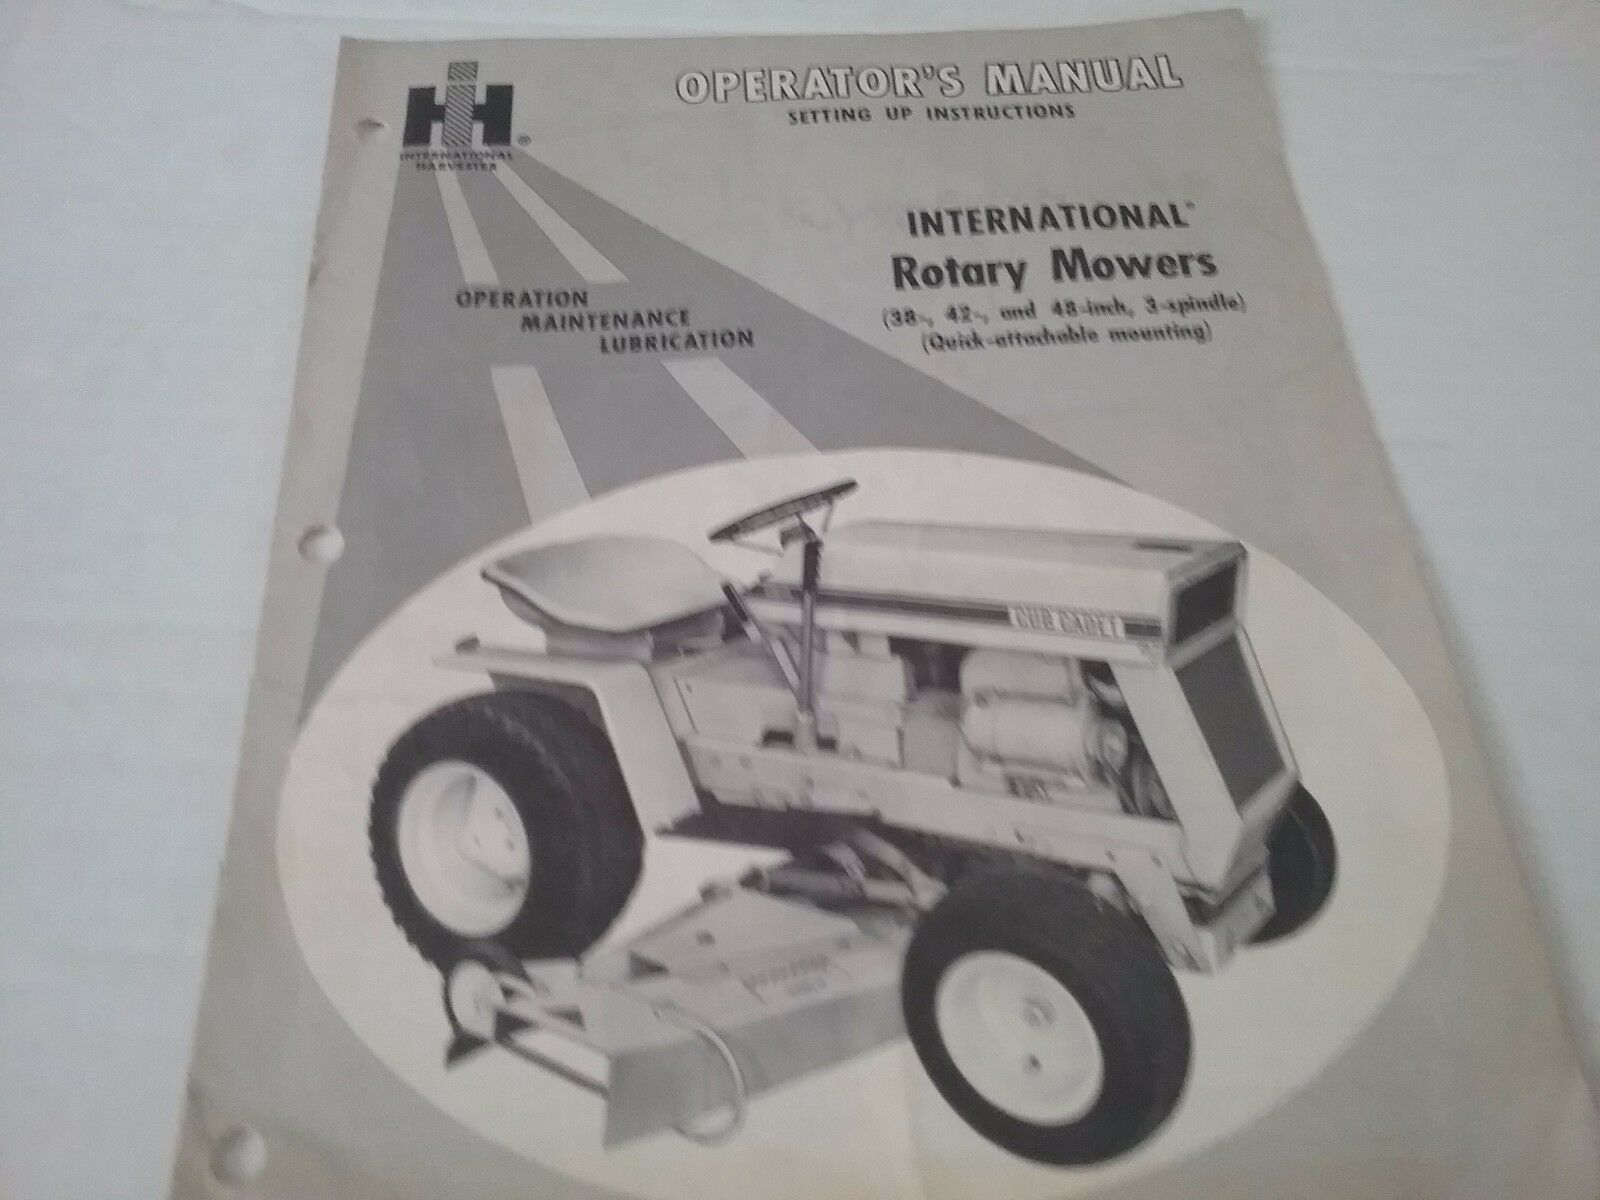 Original 1970 International Harvester Cub Cadet Rotary Mower Operators  Manual 1 of 1Only 1 available ...